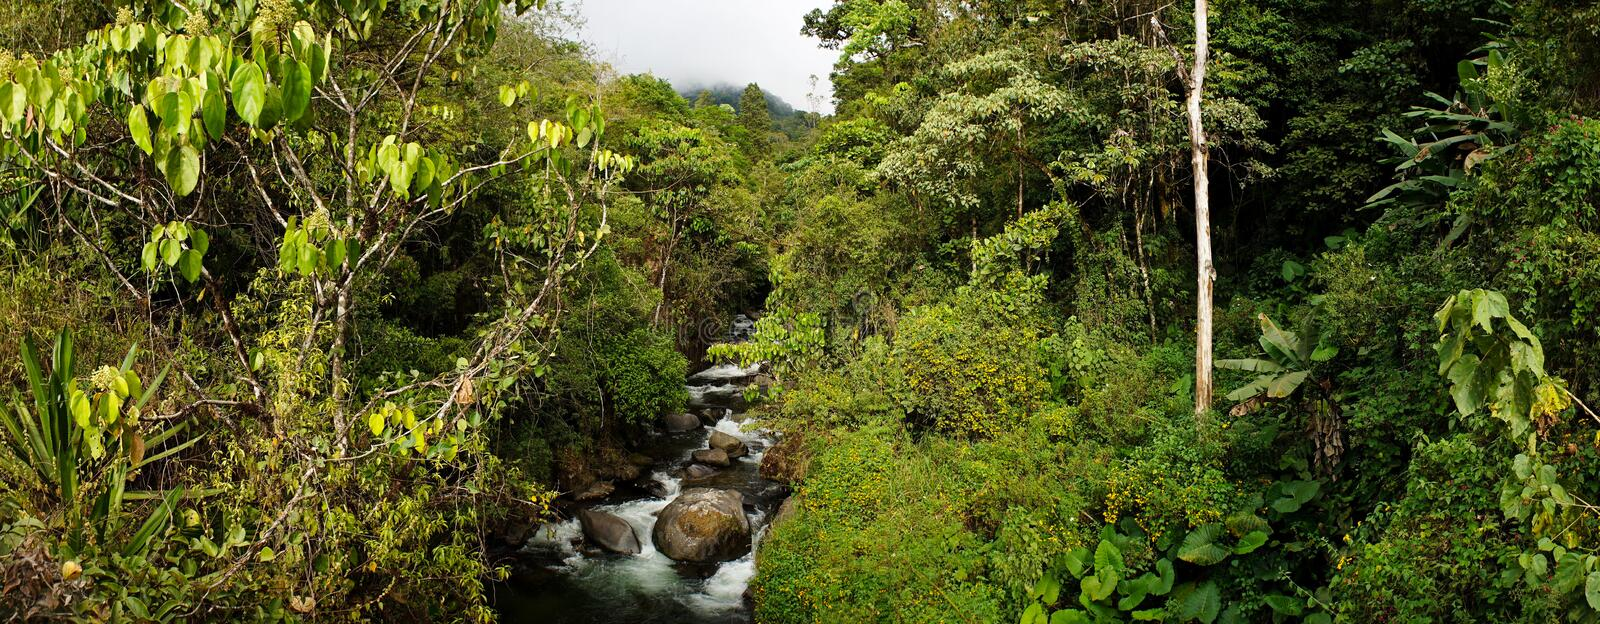 Jungle setting with river in Cloudbridge Nature Reserve, Costa Rica. royalty free stock image